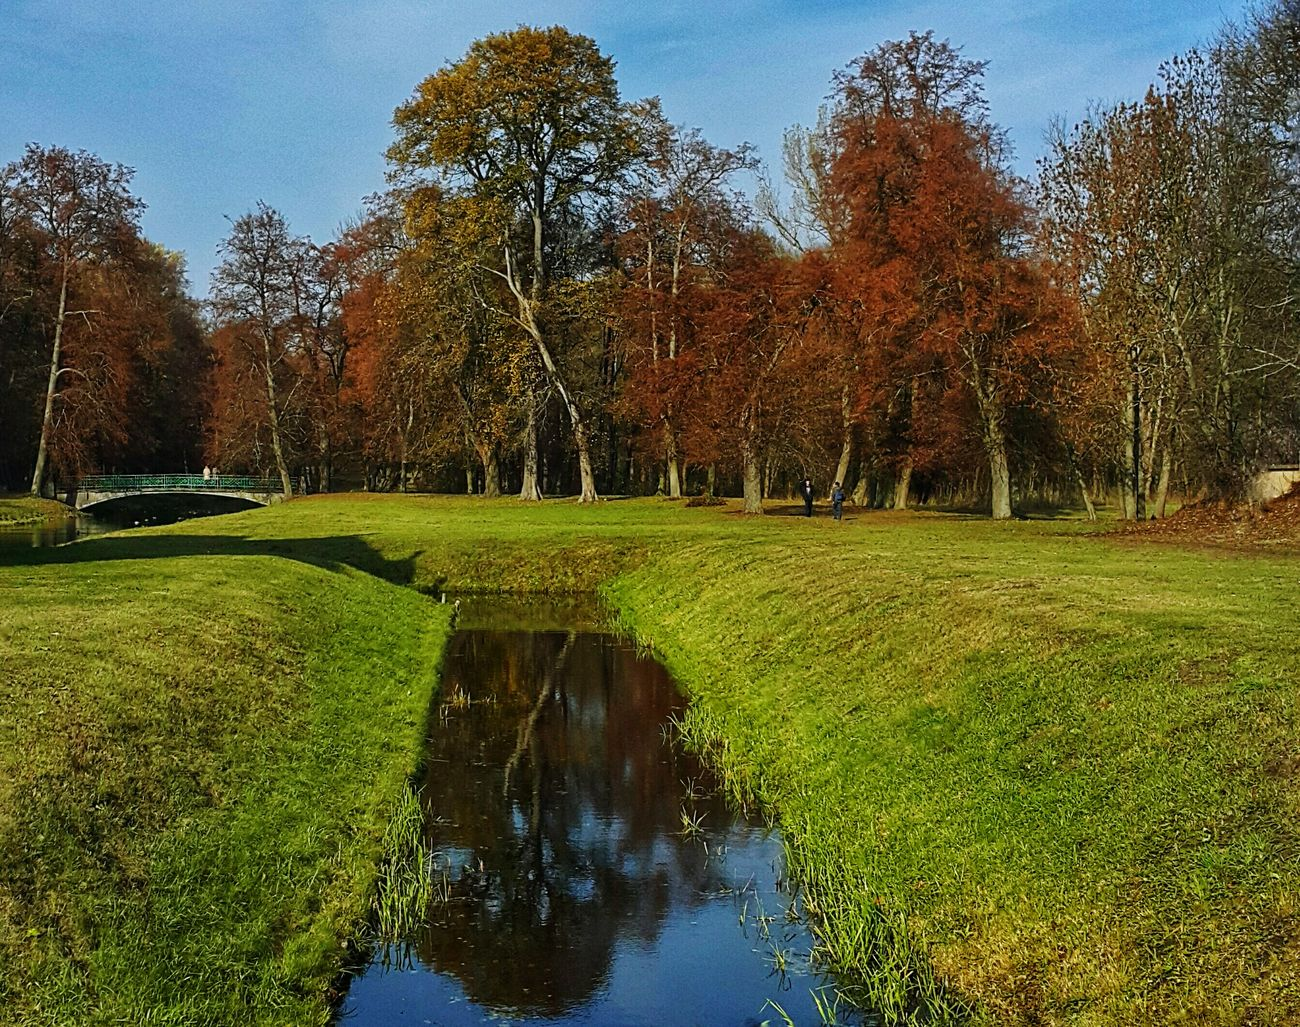 taken with samsung note 4. Białystok, Choroszcz, Poland, autumn Note4 Sams